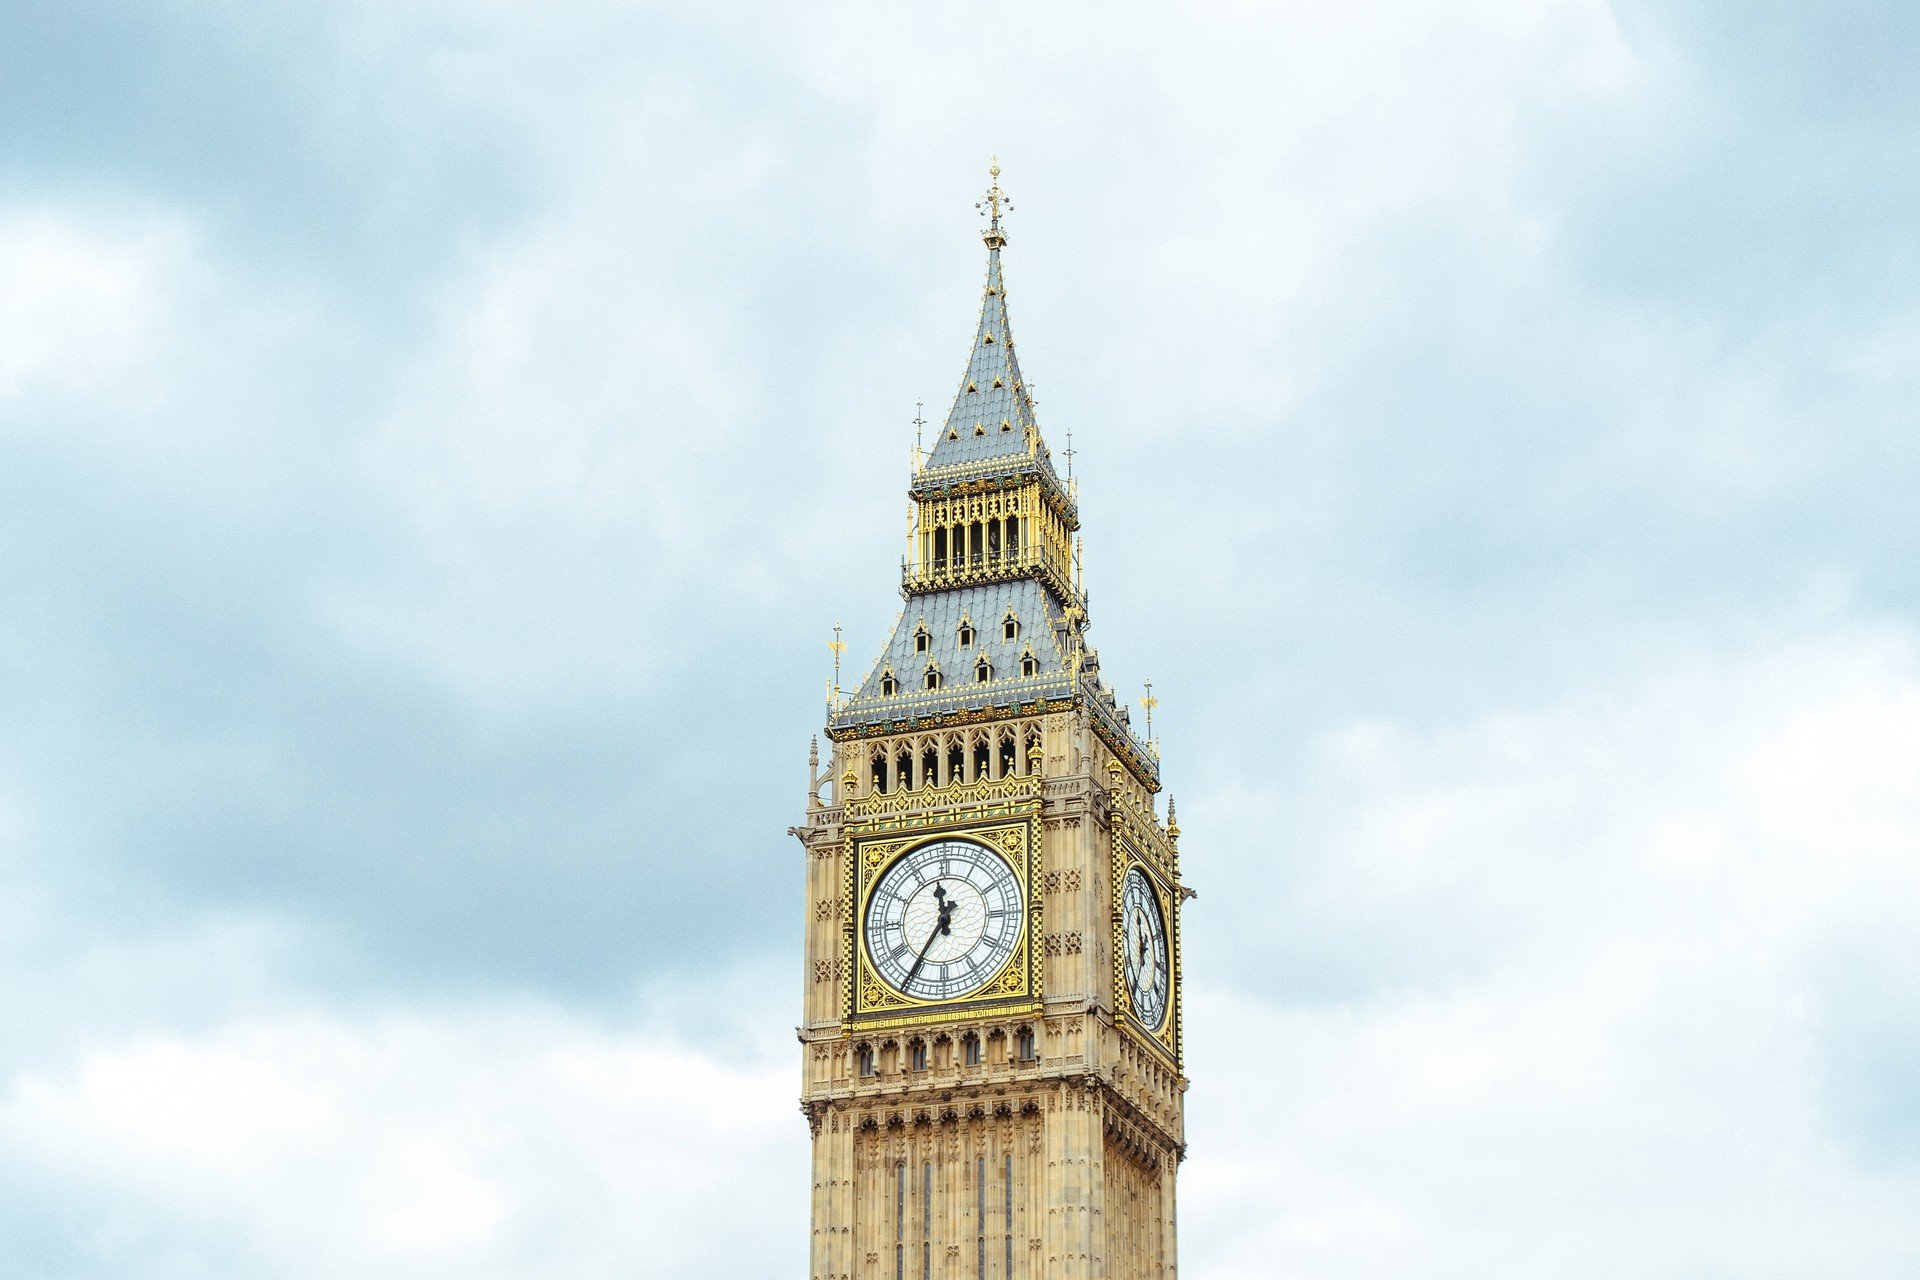 Architecture attraction City clock clock tower England Historic skyscrapers tower Trip Ideas sky outdoor building landmark spire steeple bell tower tall day